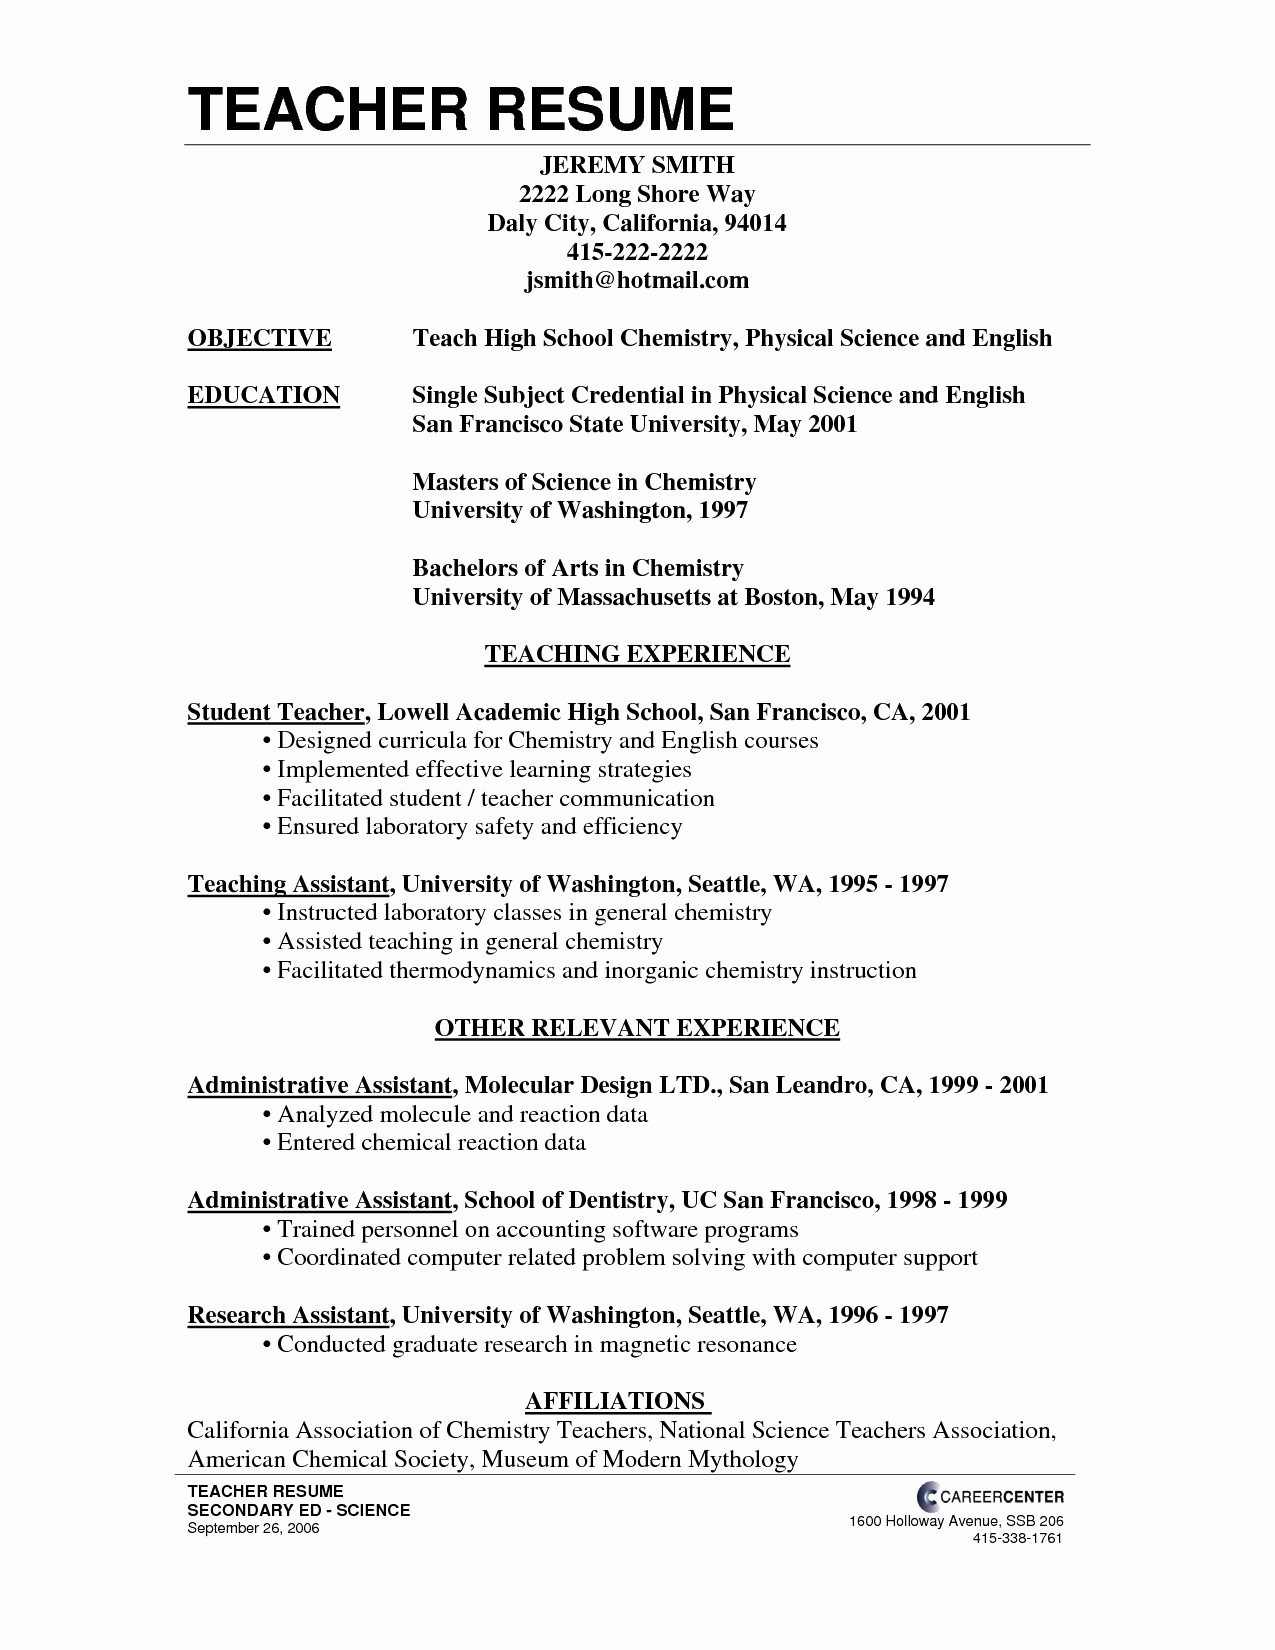 It Cover Letter Template Word - Resume Templates Word Free New Free Cover Letter Templates Examples